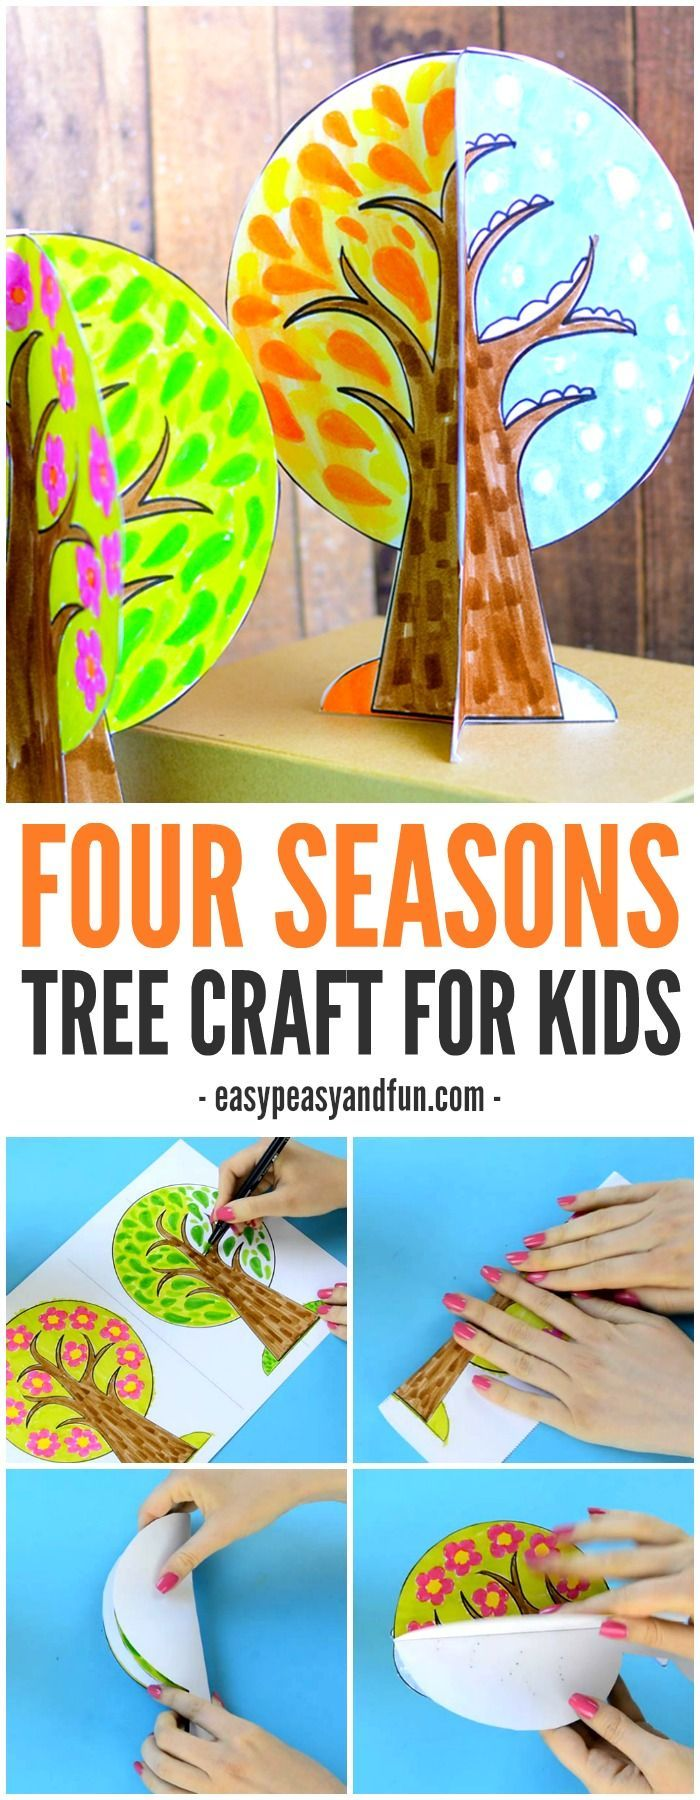 A four season tree craft for kids! This 3D craft is a great way to talk about seasons with children!